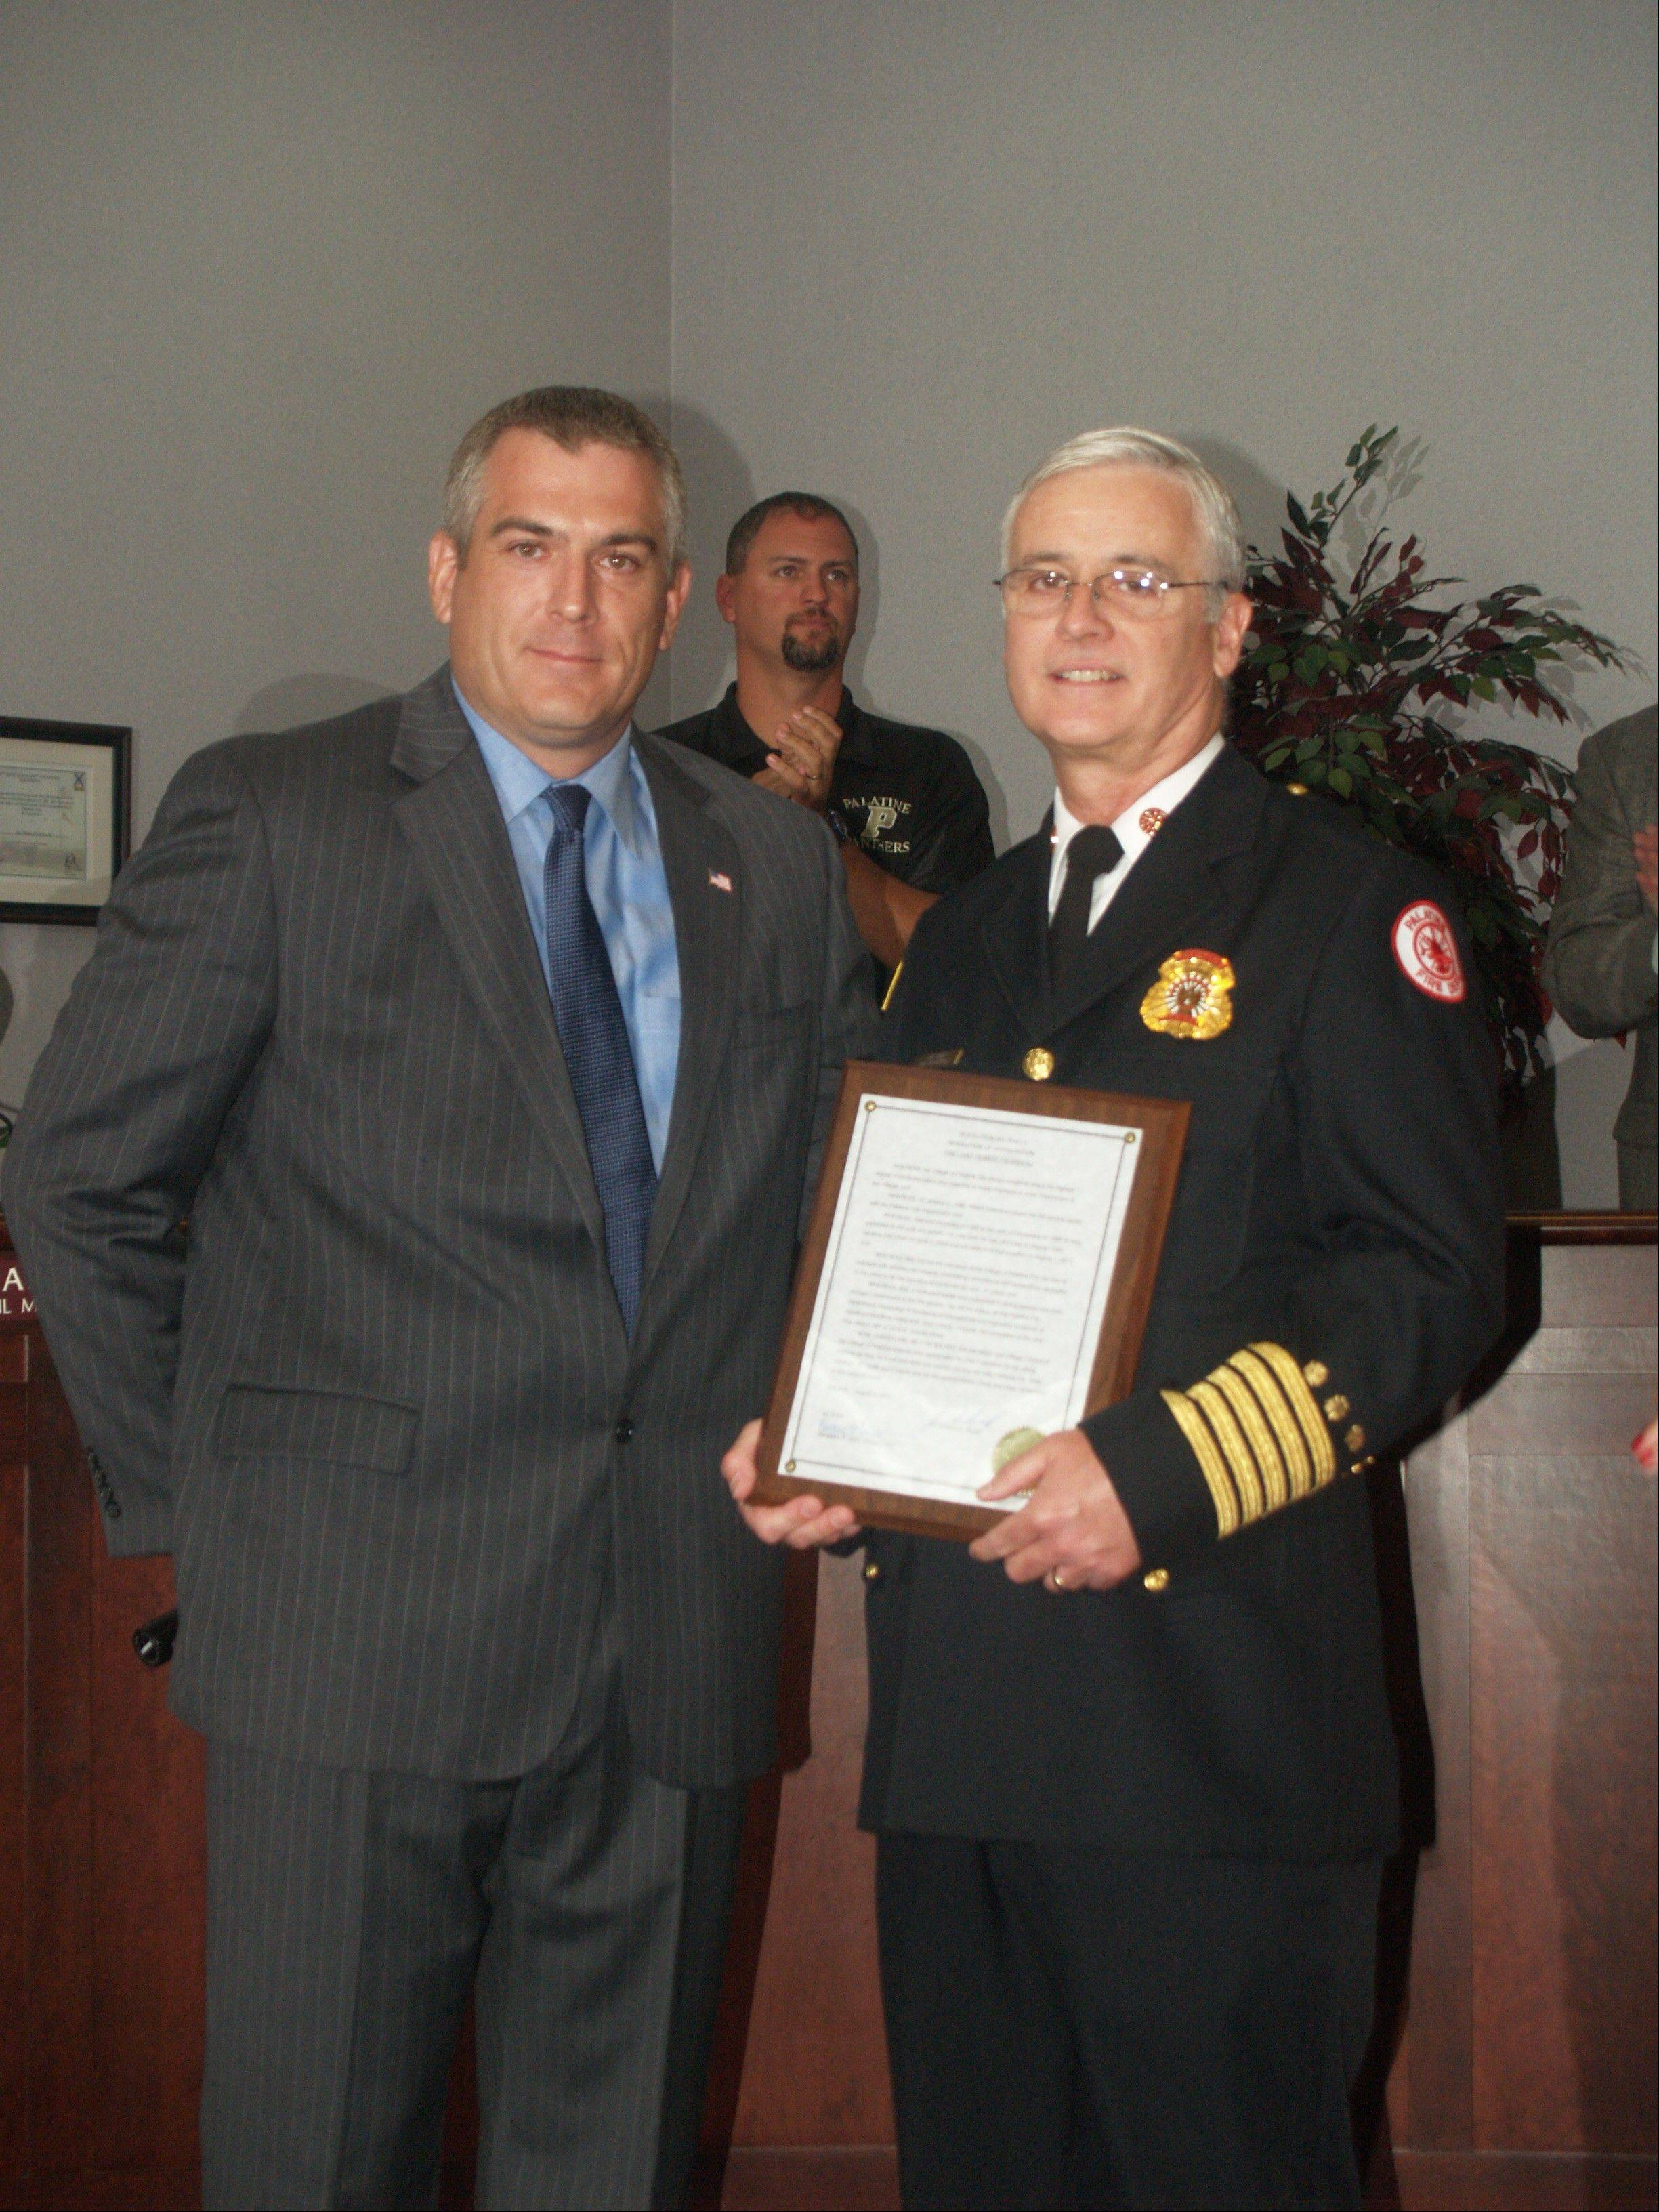 Palatine village President Jim Schwantz presents a plaque to retiring Fire Chief Robert Falardeau at this week's village council meeting.